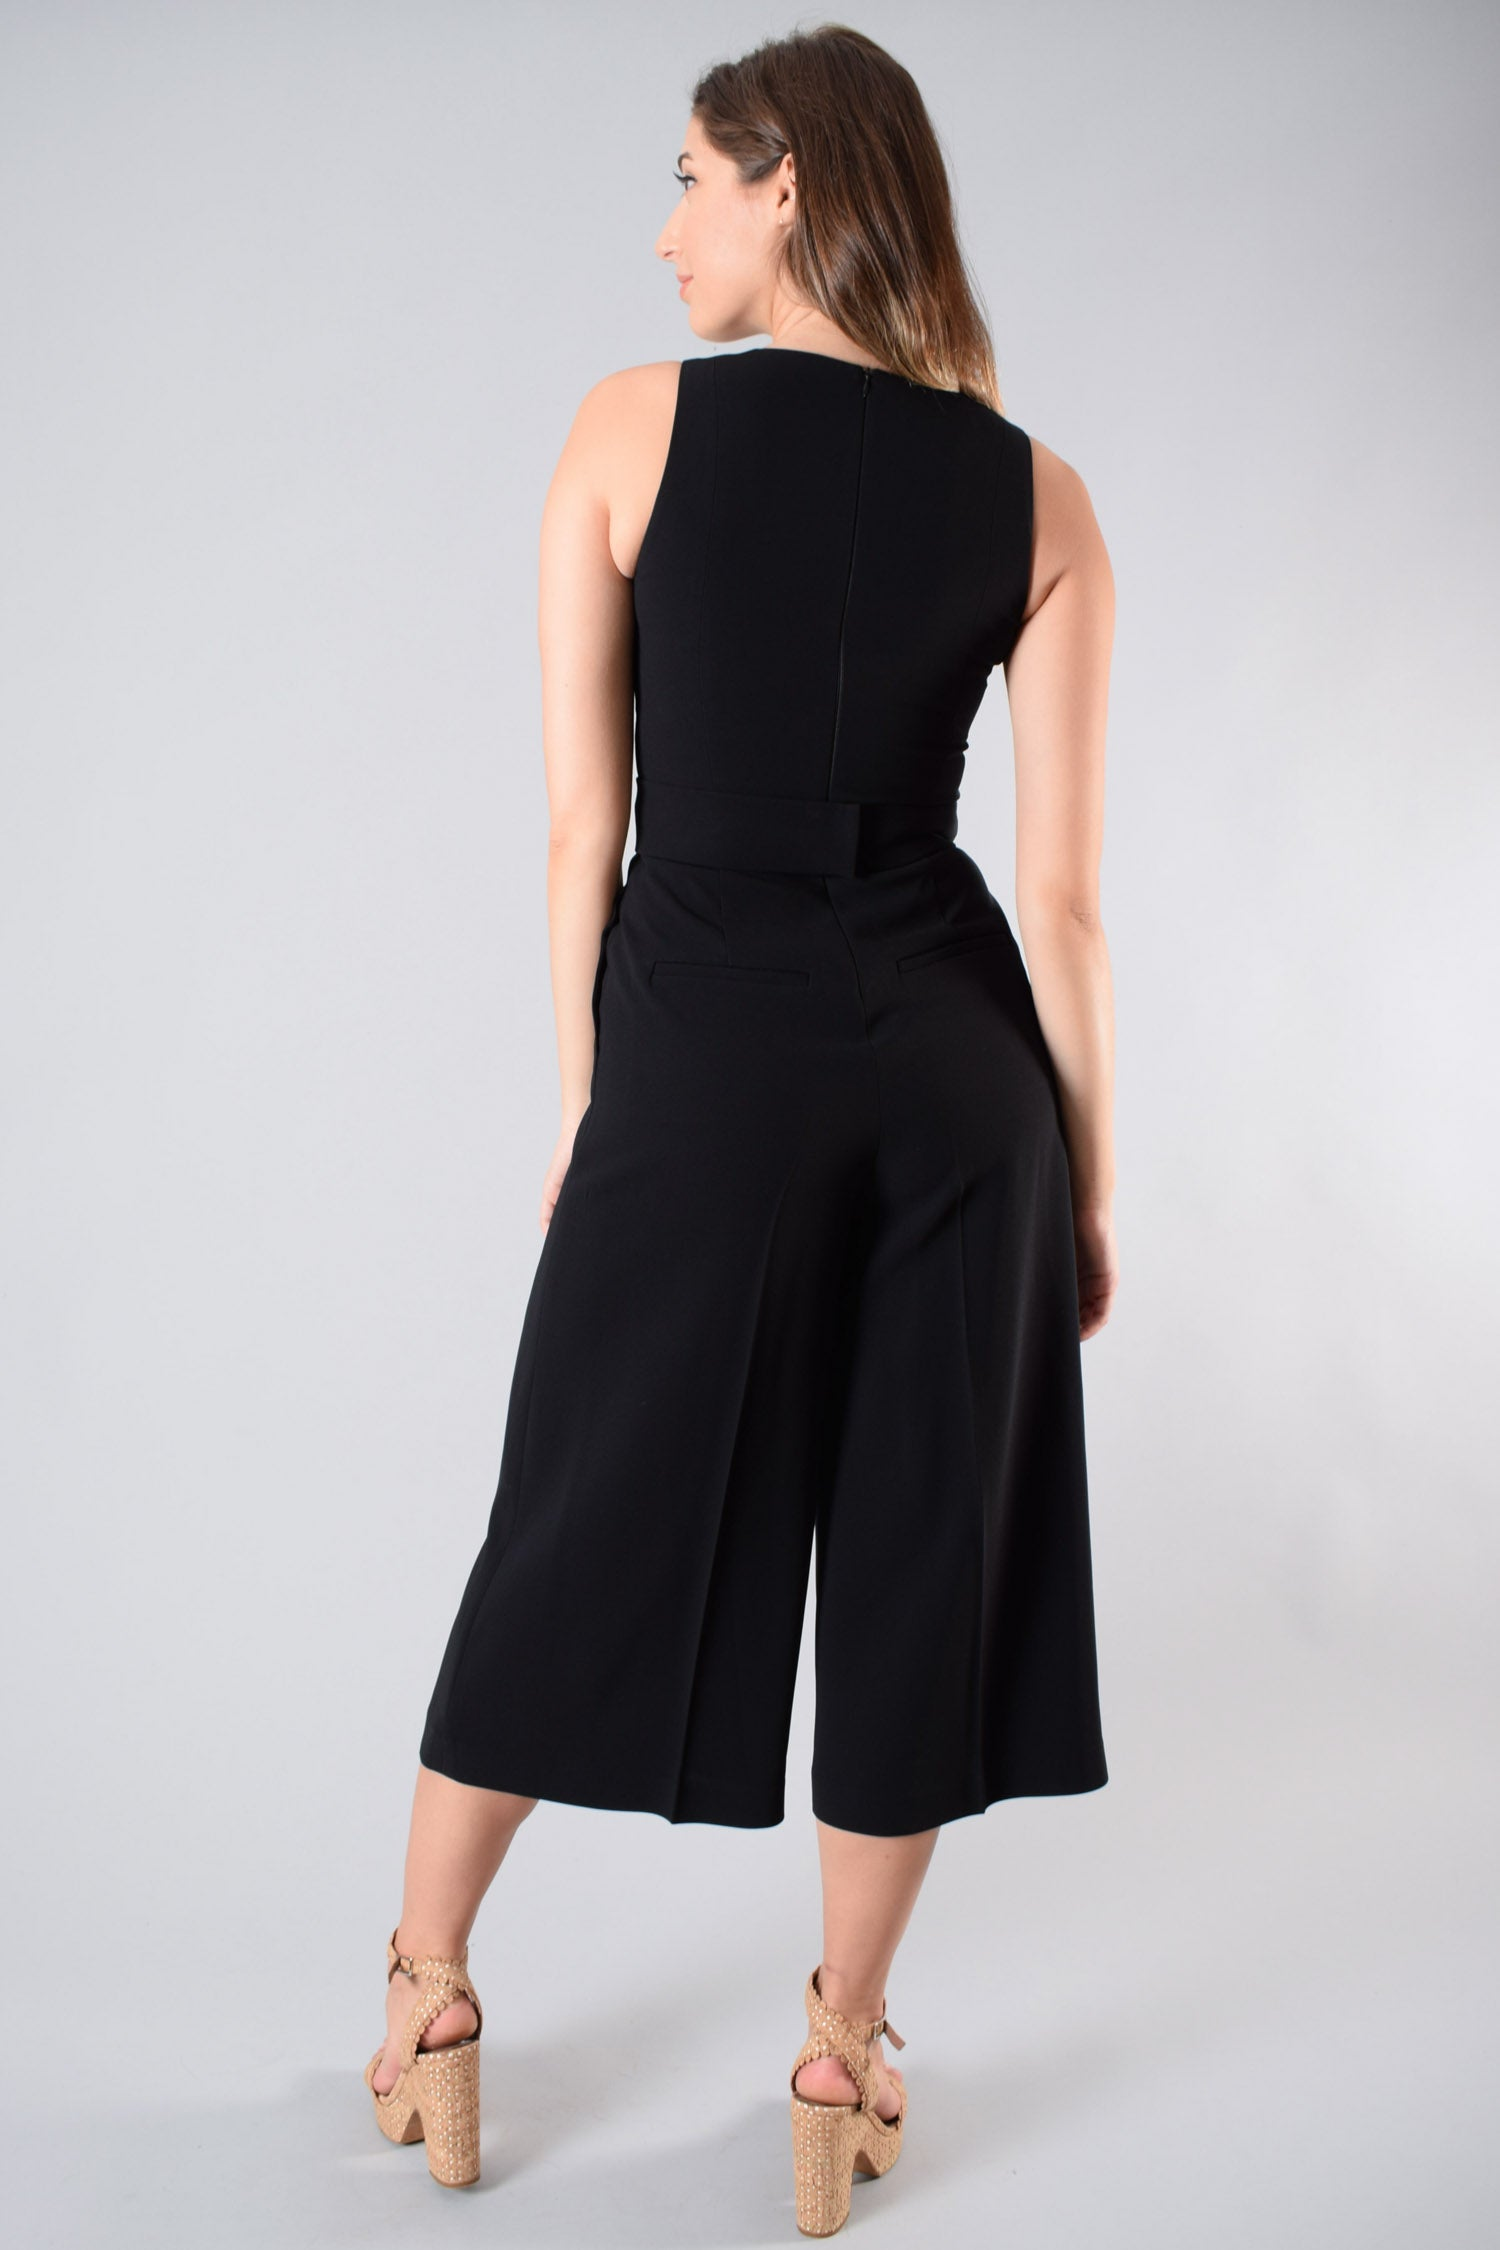 Judith & Charles Black Sleeveless Jumpsuit Size 2